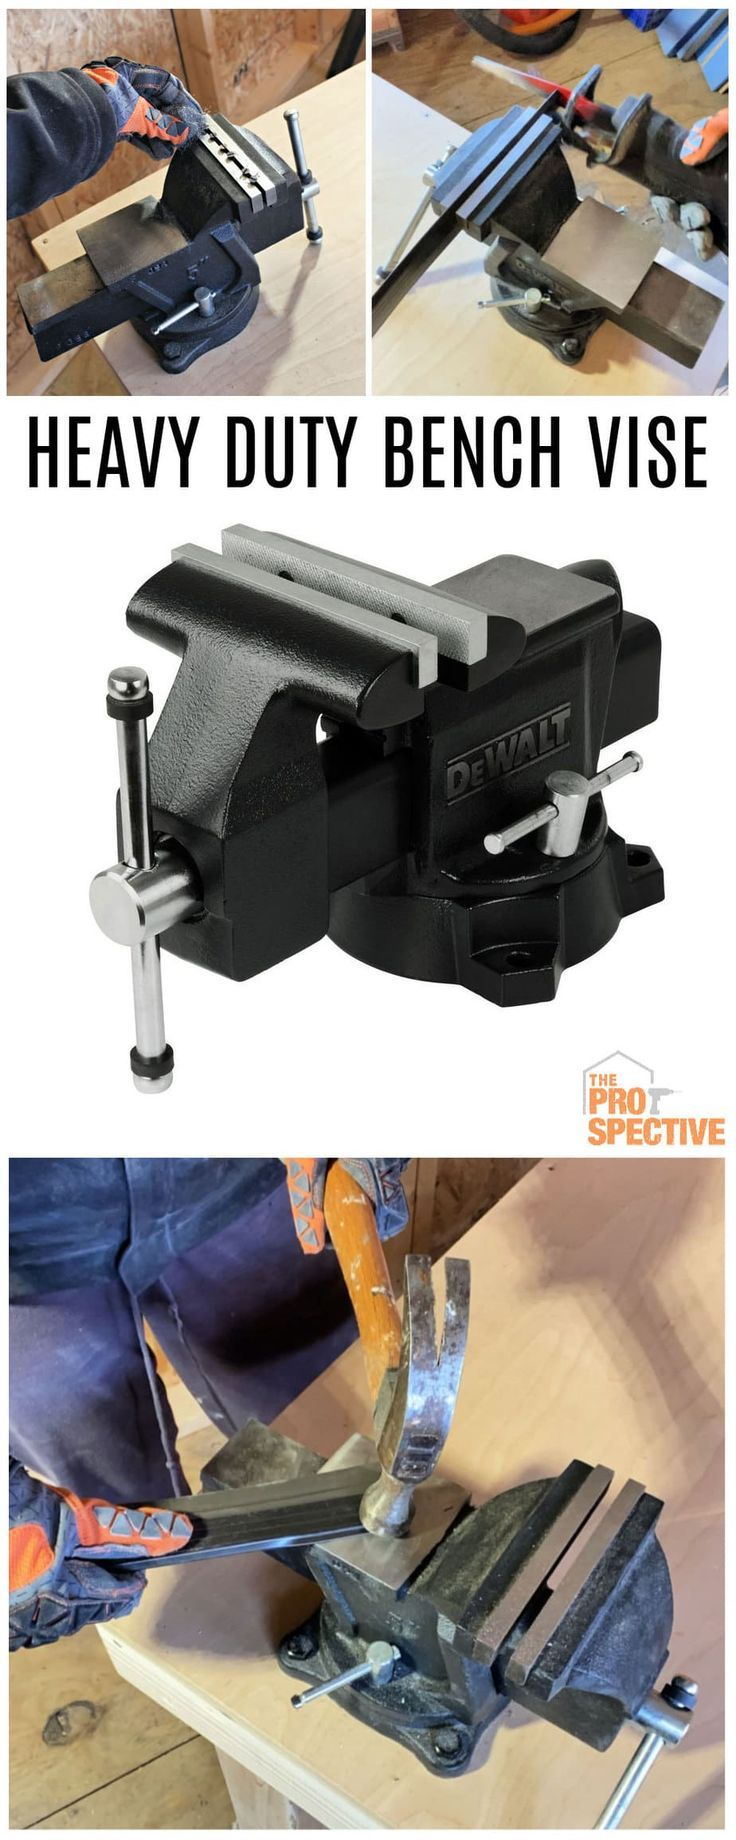 Heavy Duty Bench Vise in 2020 Bench vise, Heavy duty, Vise